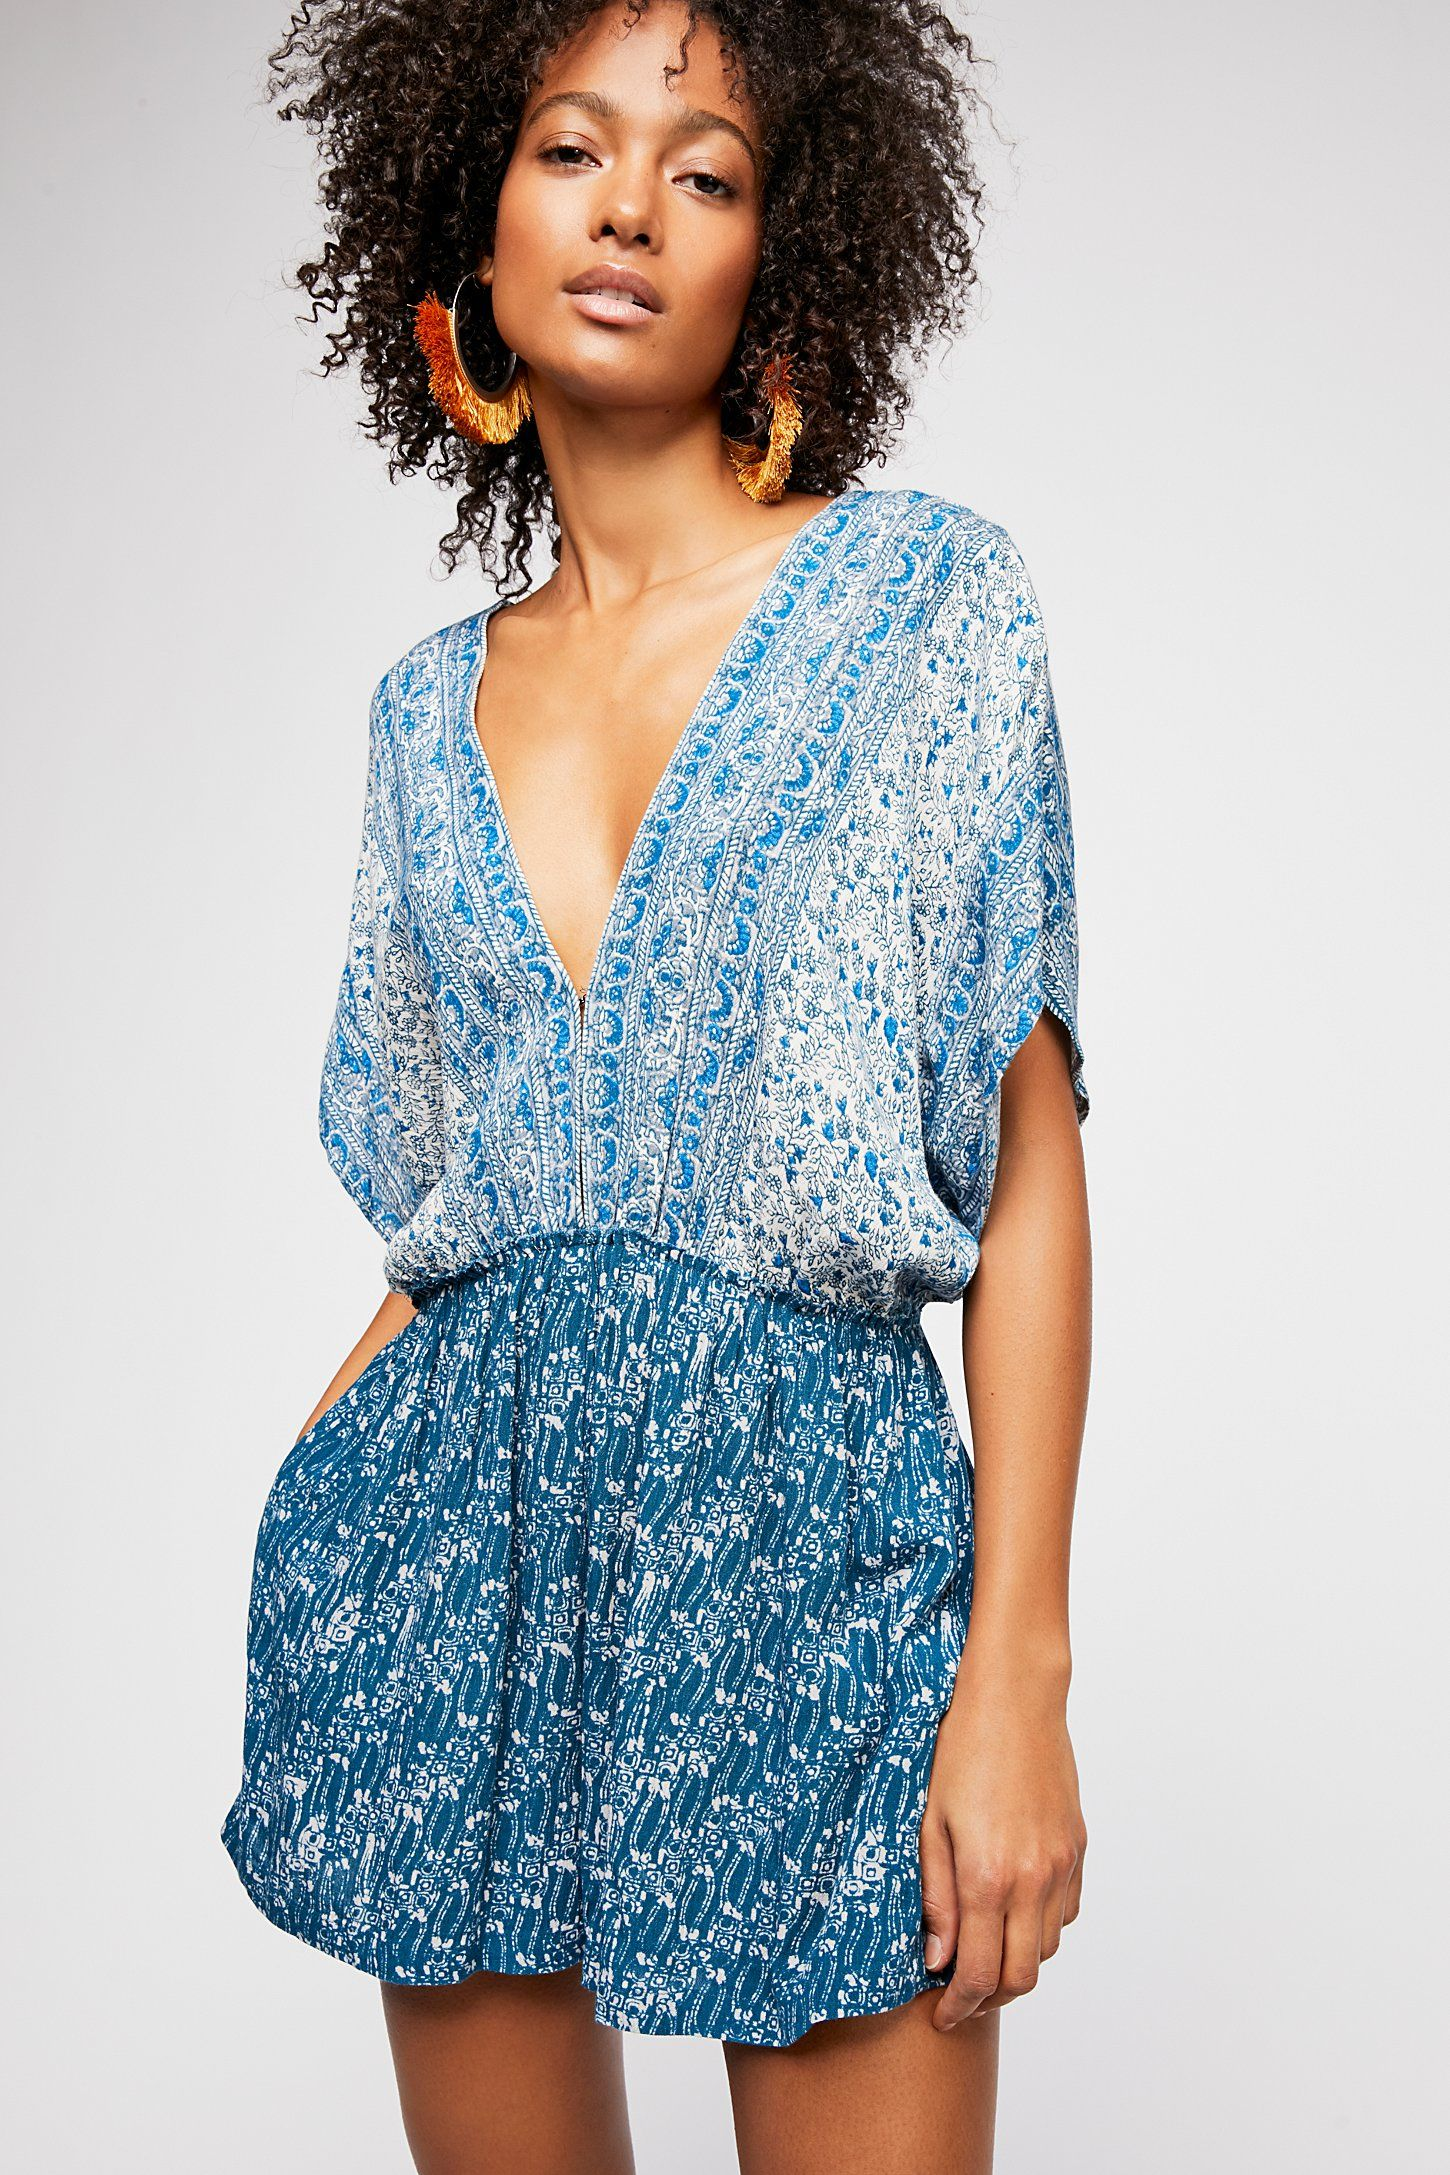 84162dfa0d3 Shop our Arizona Romper at FreePeople.com. Share style pics with FP Me